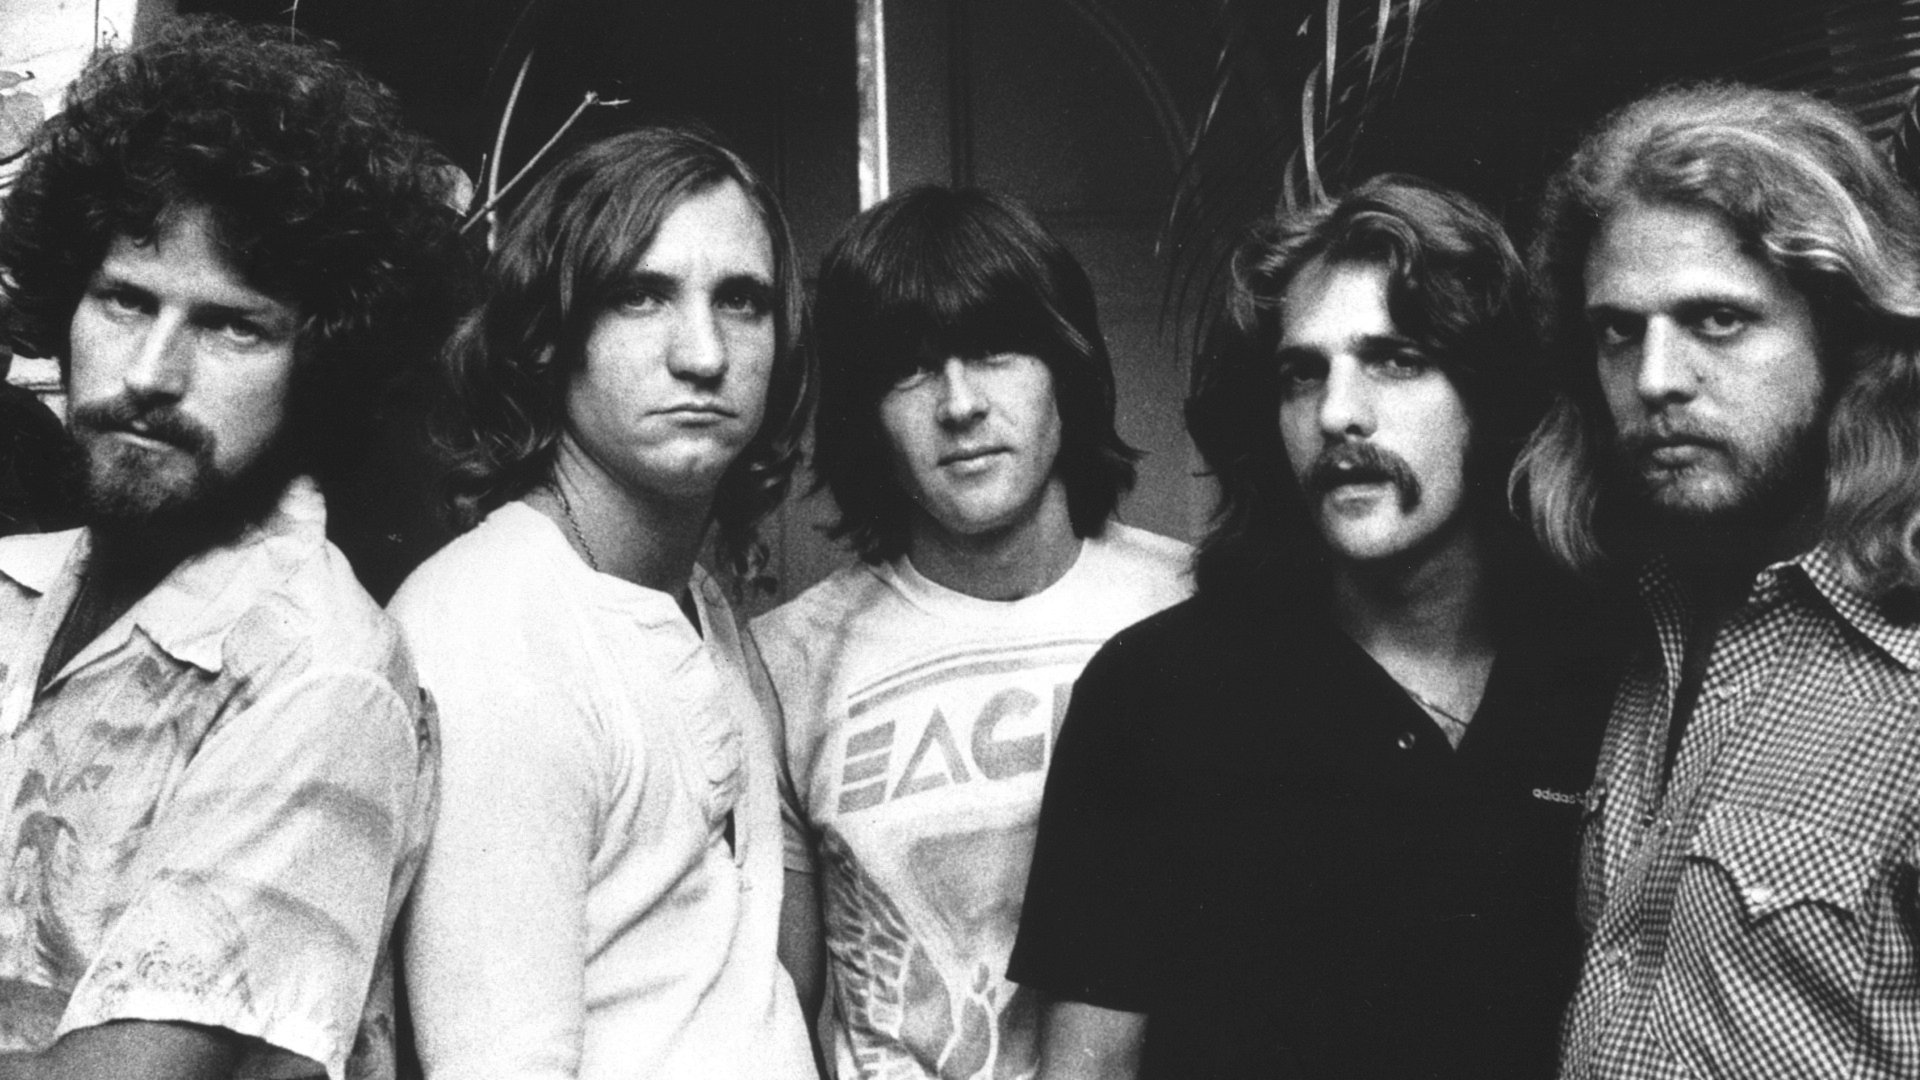 The Eagles Hotel california lyrics review song meaning